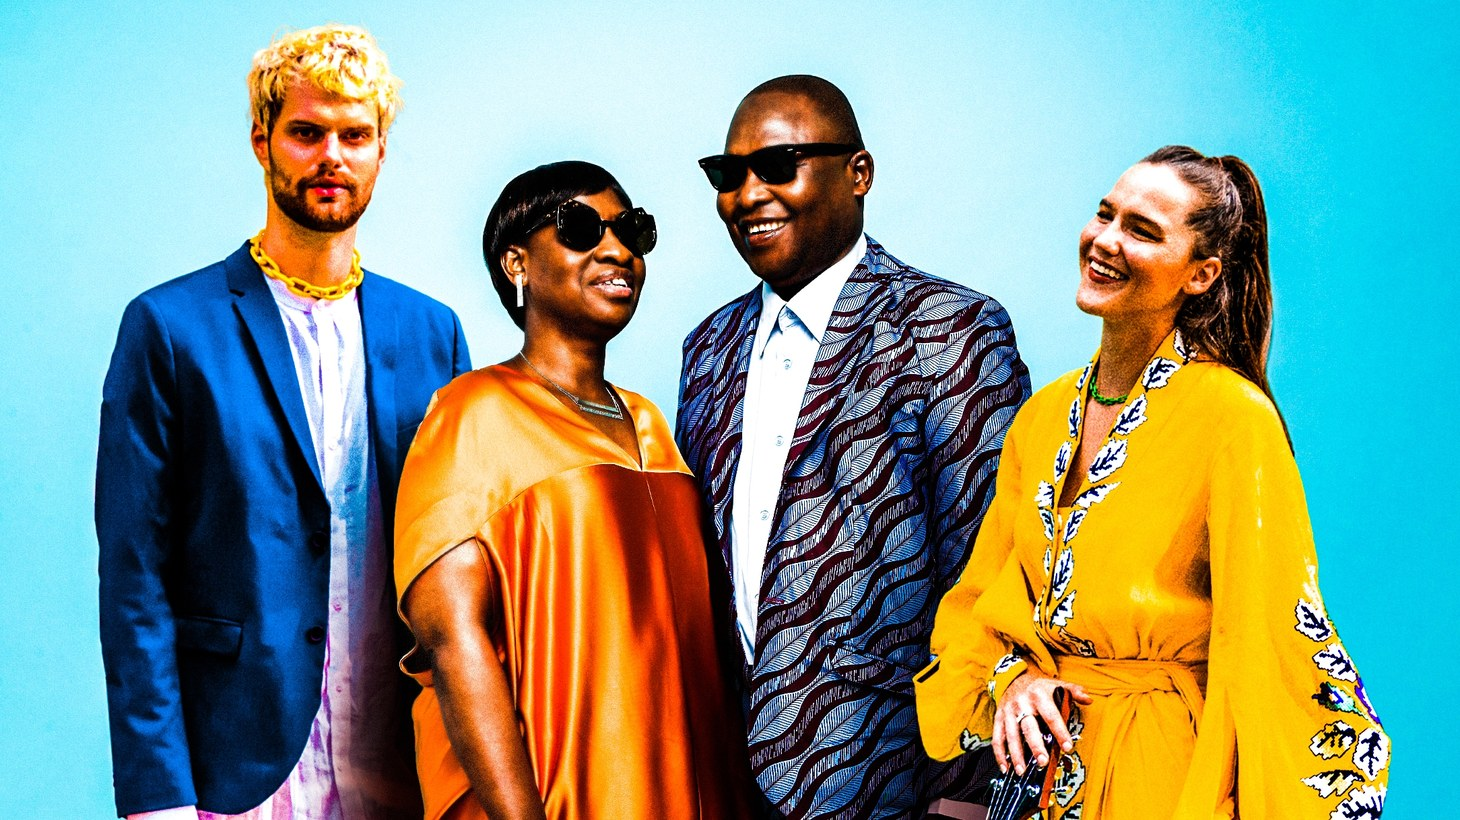 """A cross-continent, cross-genre collaboration between Bomako-born artists Amadou & Mariam and dance floor duo Sofi Tukker transcends barriers with singing in Portuguese, Bambara, and French on the euphoric track """"Mon Cheri."""""""